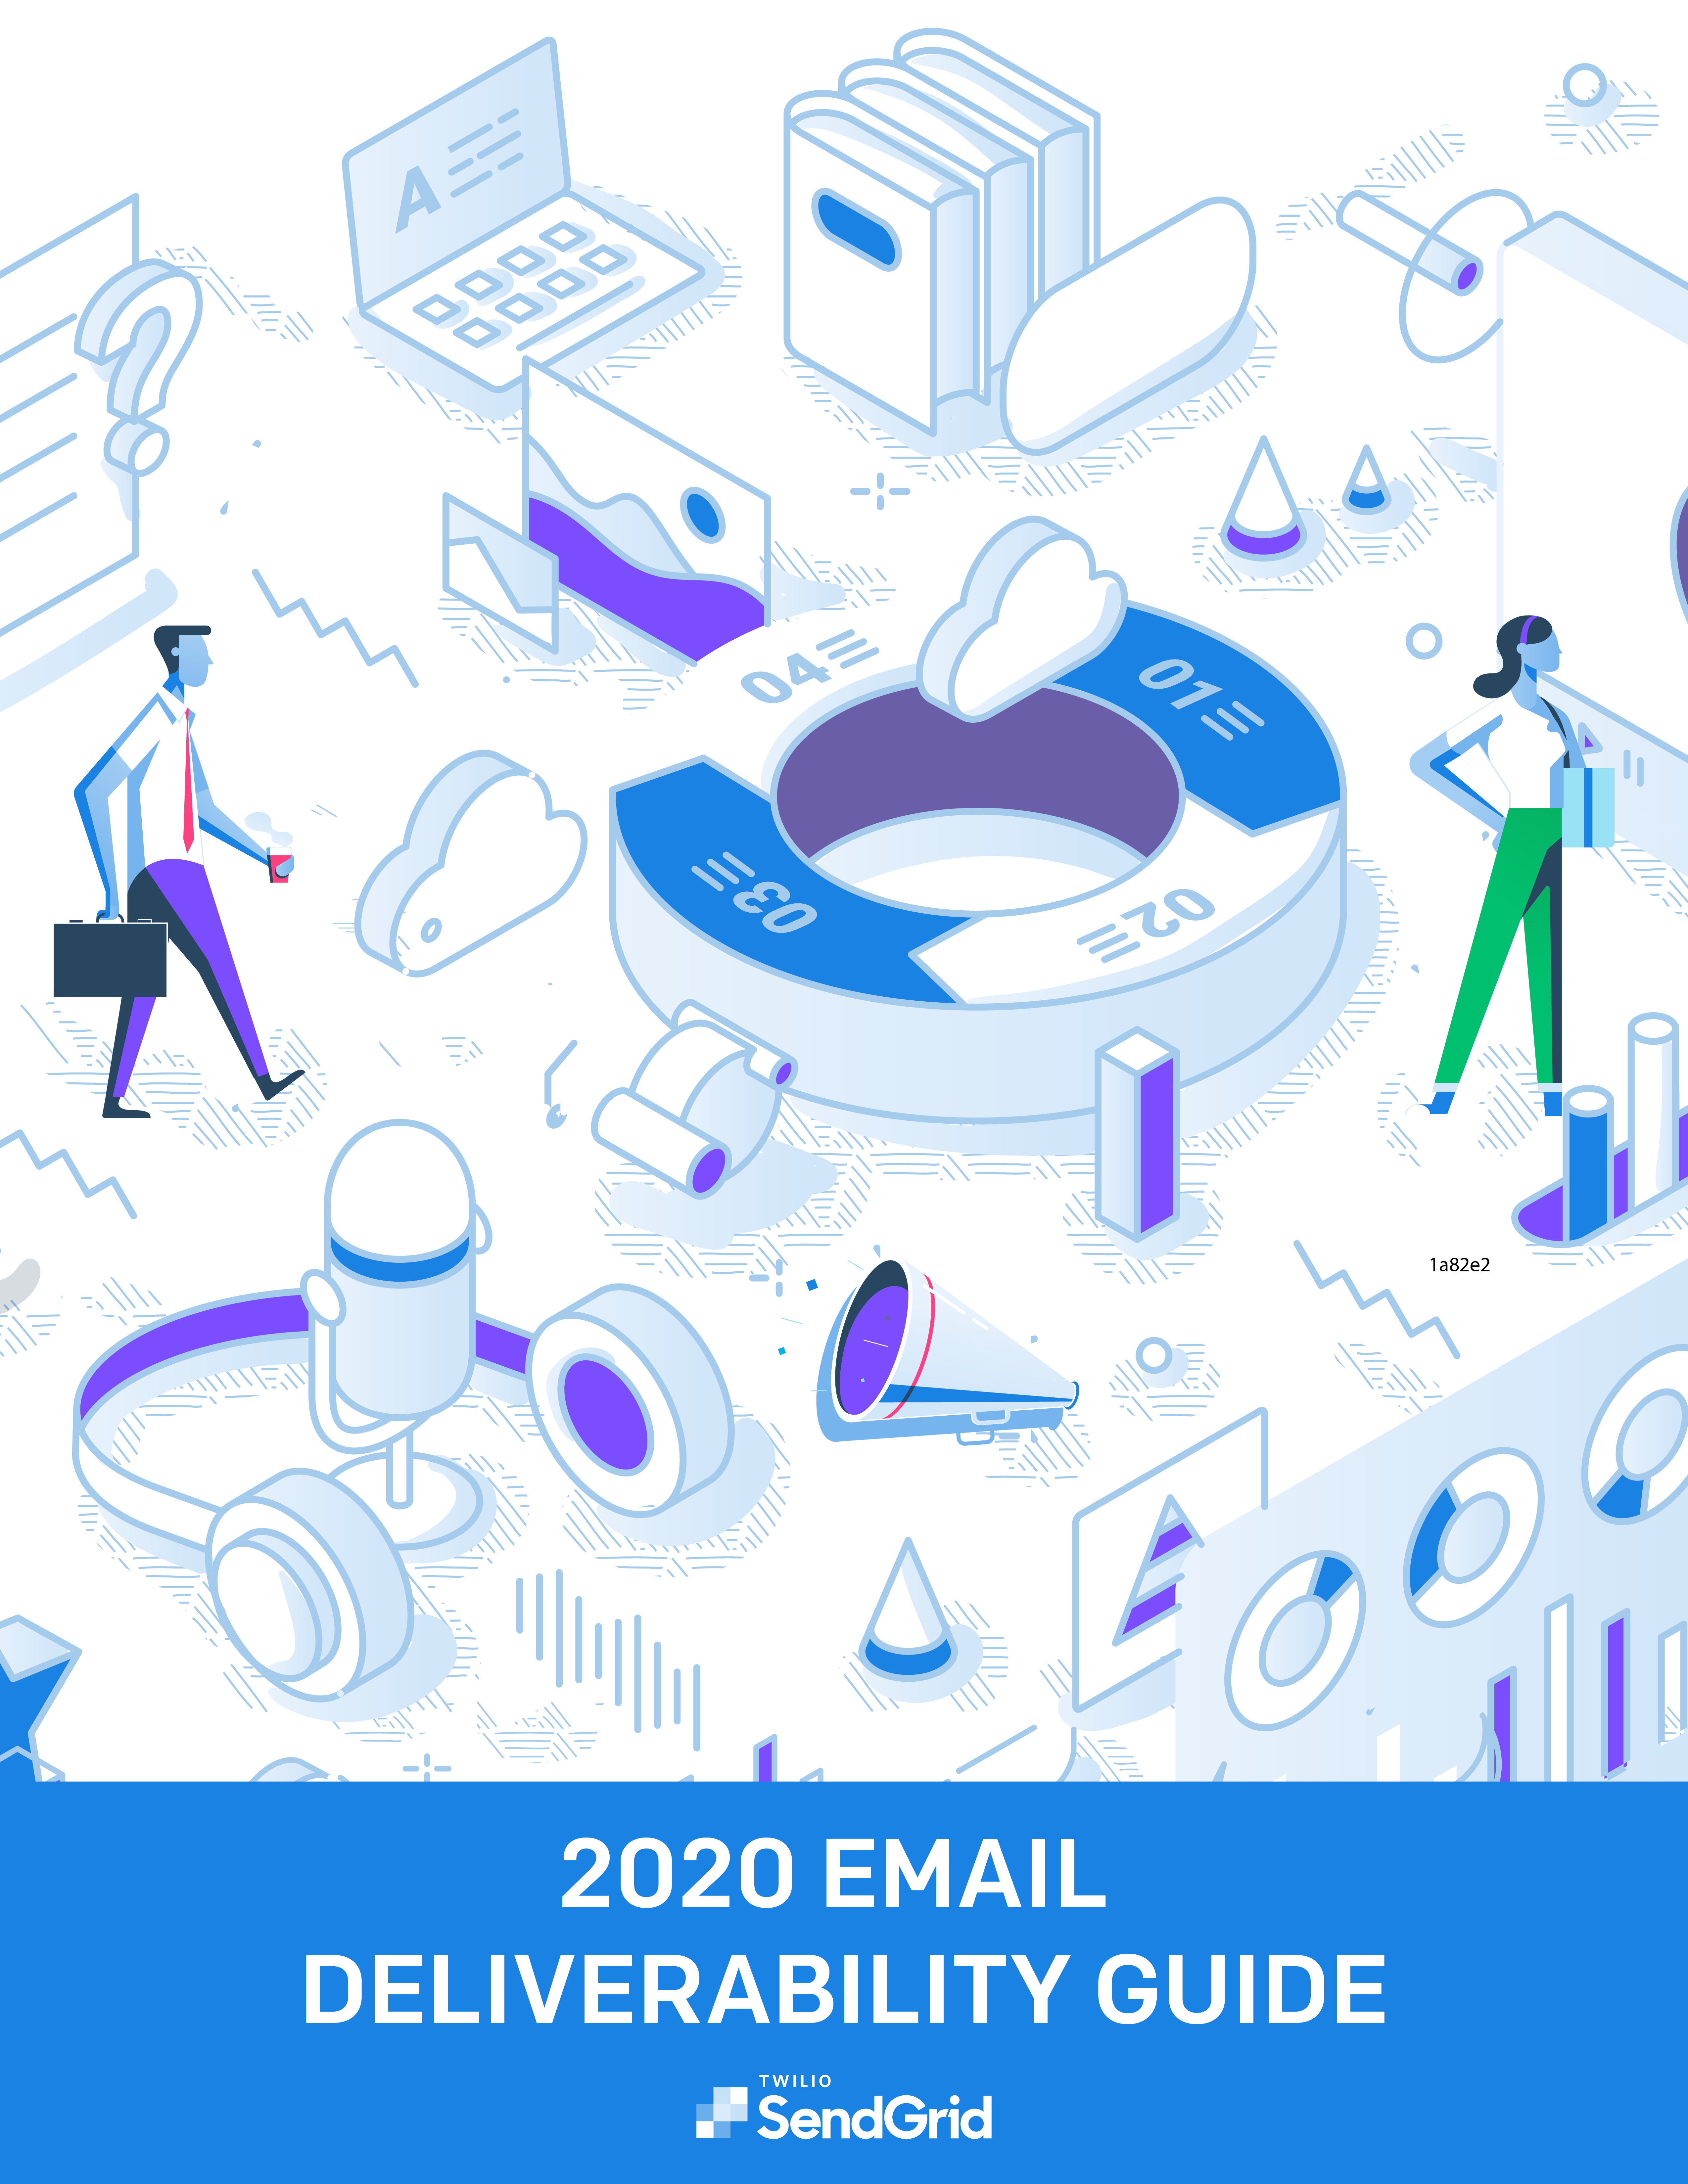 2020 Email Guide 1224x1584 01 1